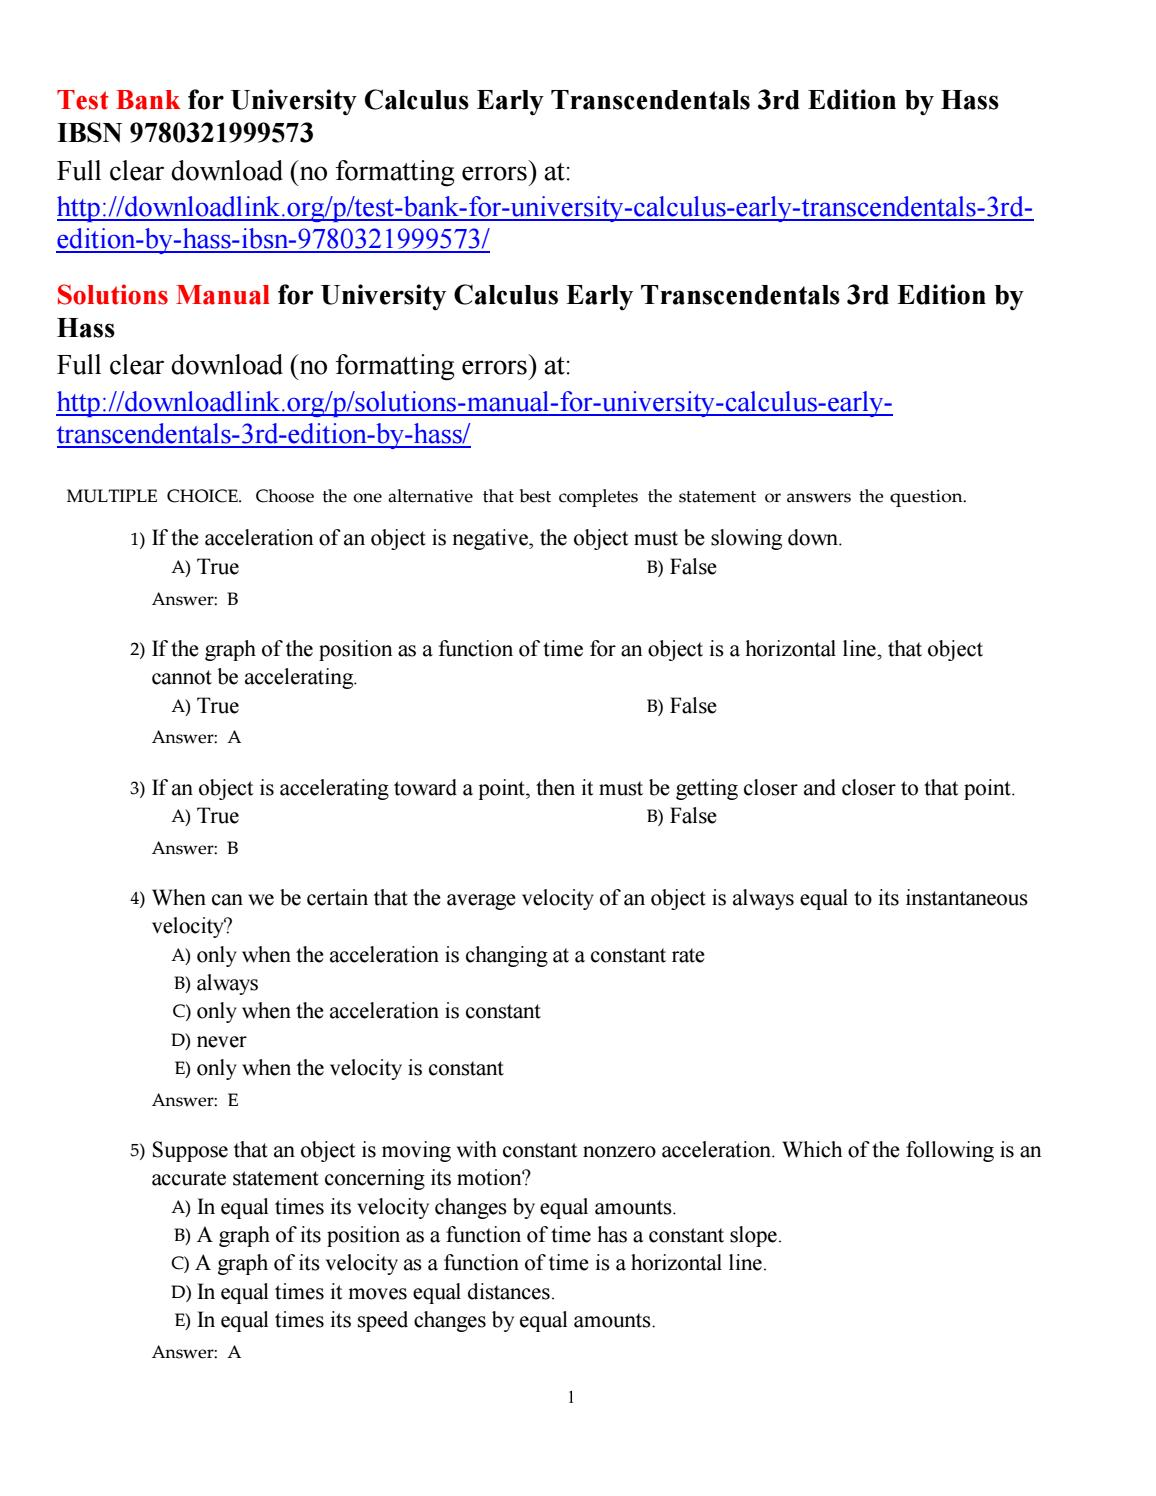 Test bank for university calculus early transcendentals 3rd edition by hass  ibsn 9780321999573 by Freeman855 - issuu